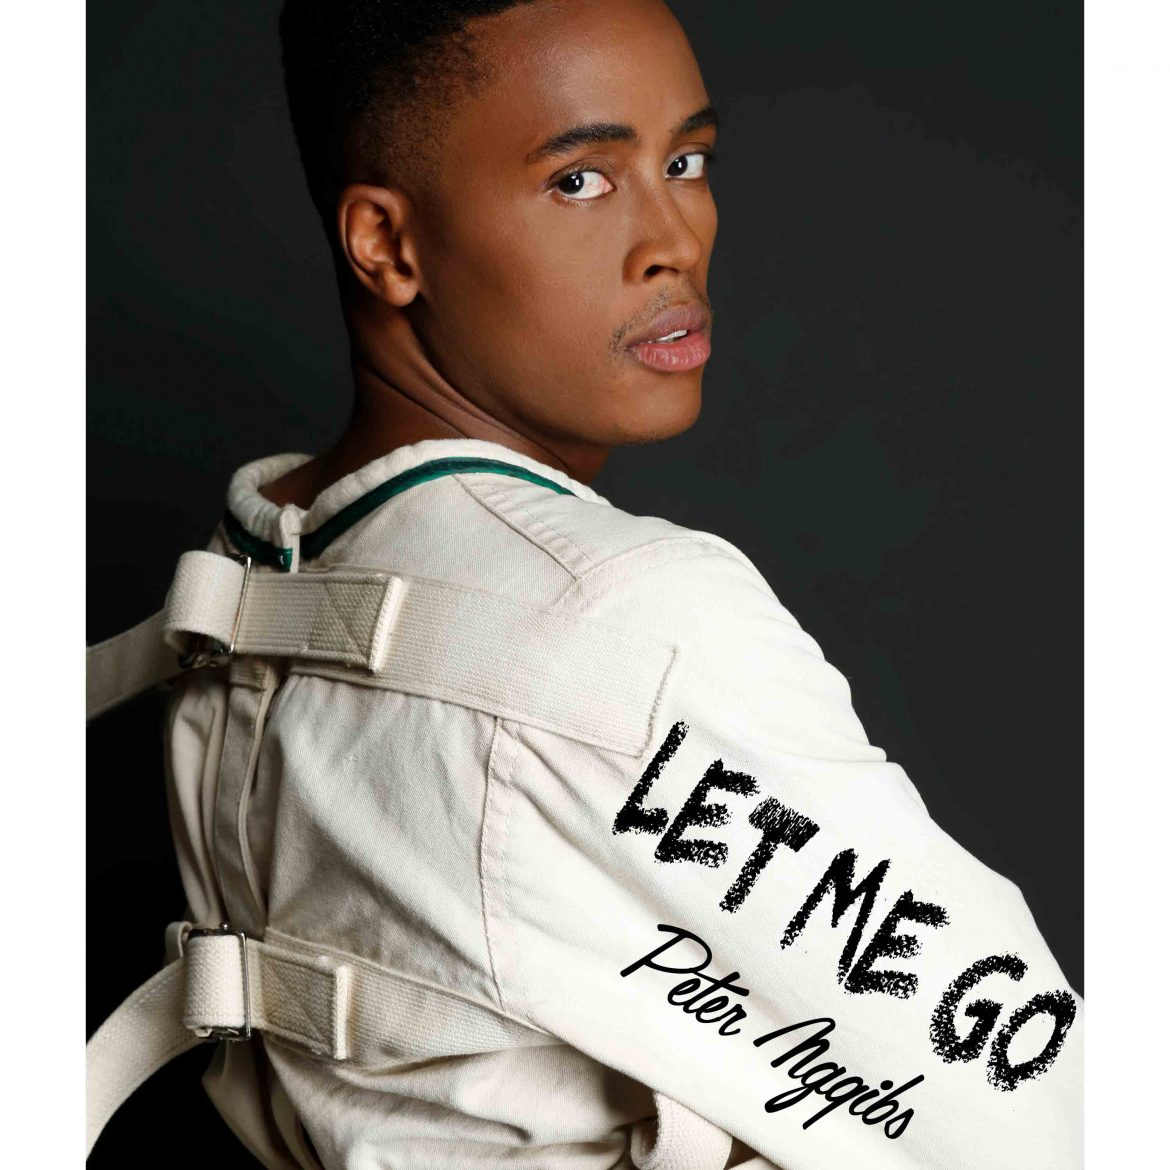 PETER NGQIBS RELEASES HIS OFFICIAL FULL LENGTH ALBUM 'LET ME GO'